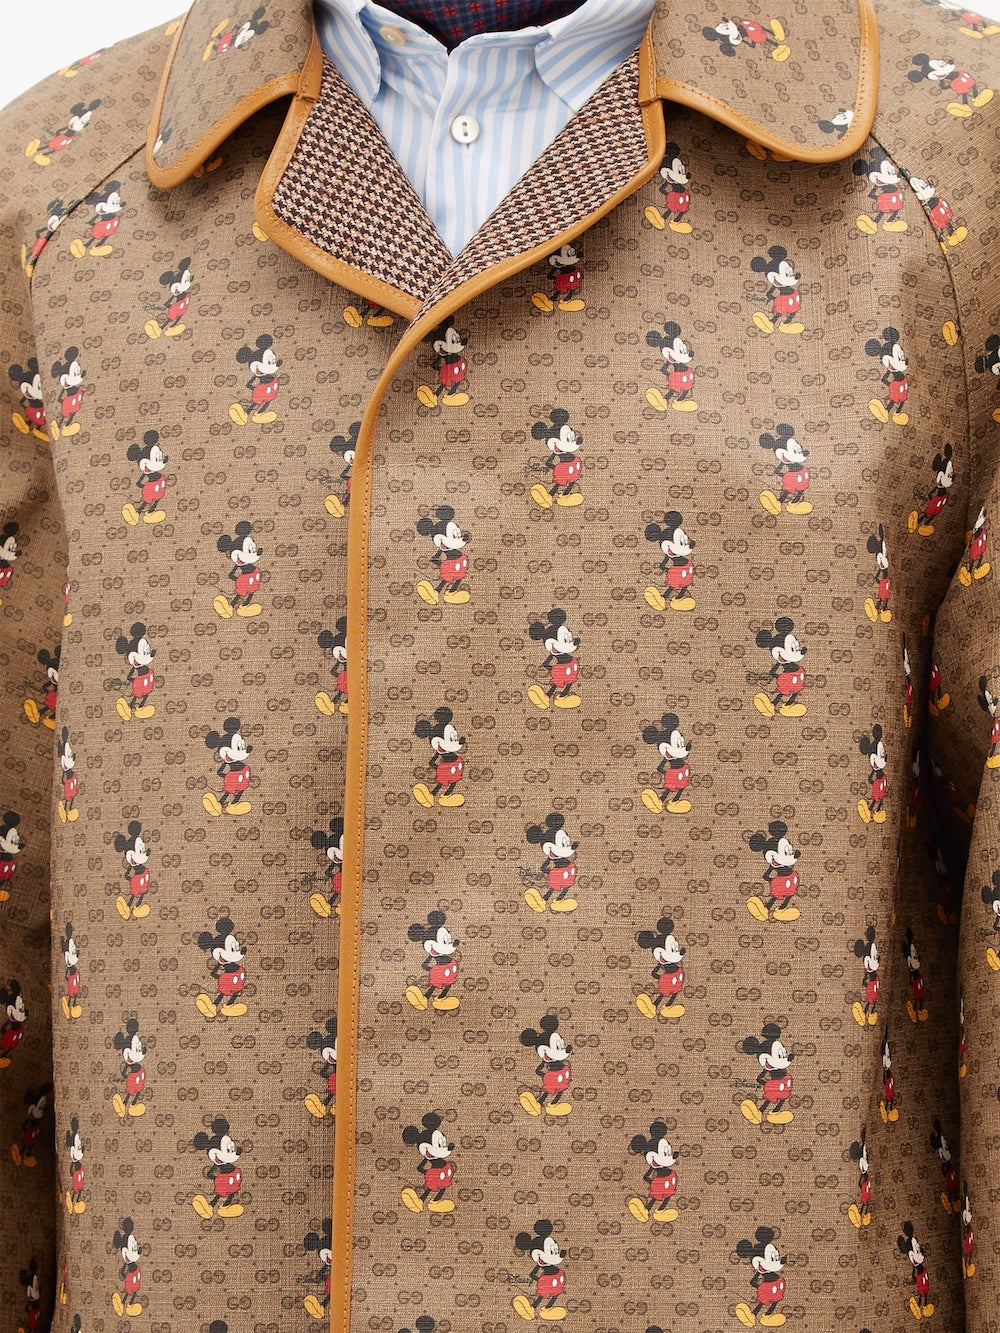 Disney X Gucci Capsule Collection for the Chinese New Year